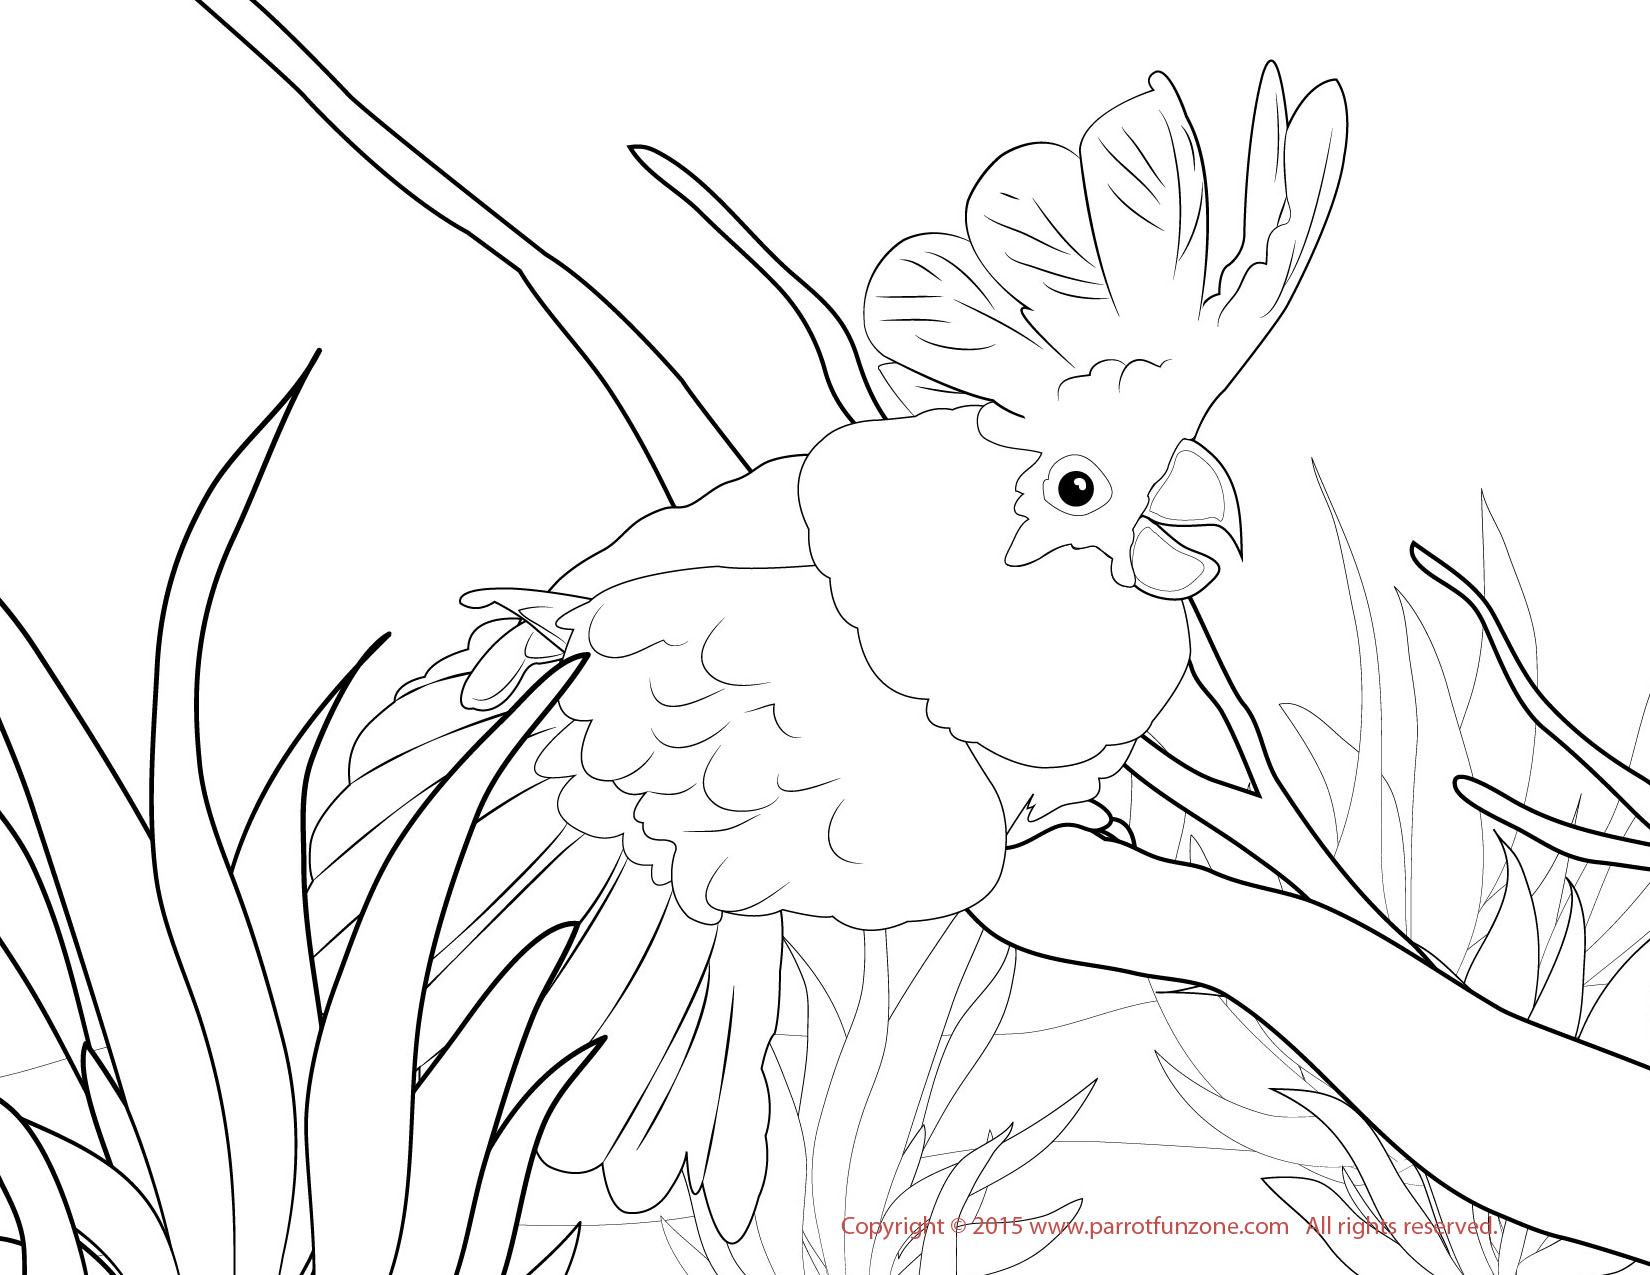 umbrella cockatoo coloring page